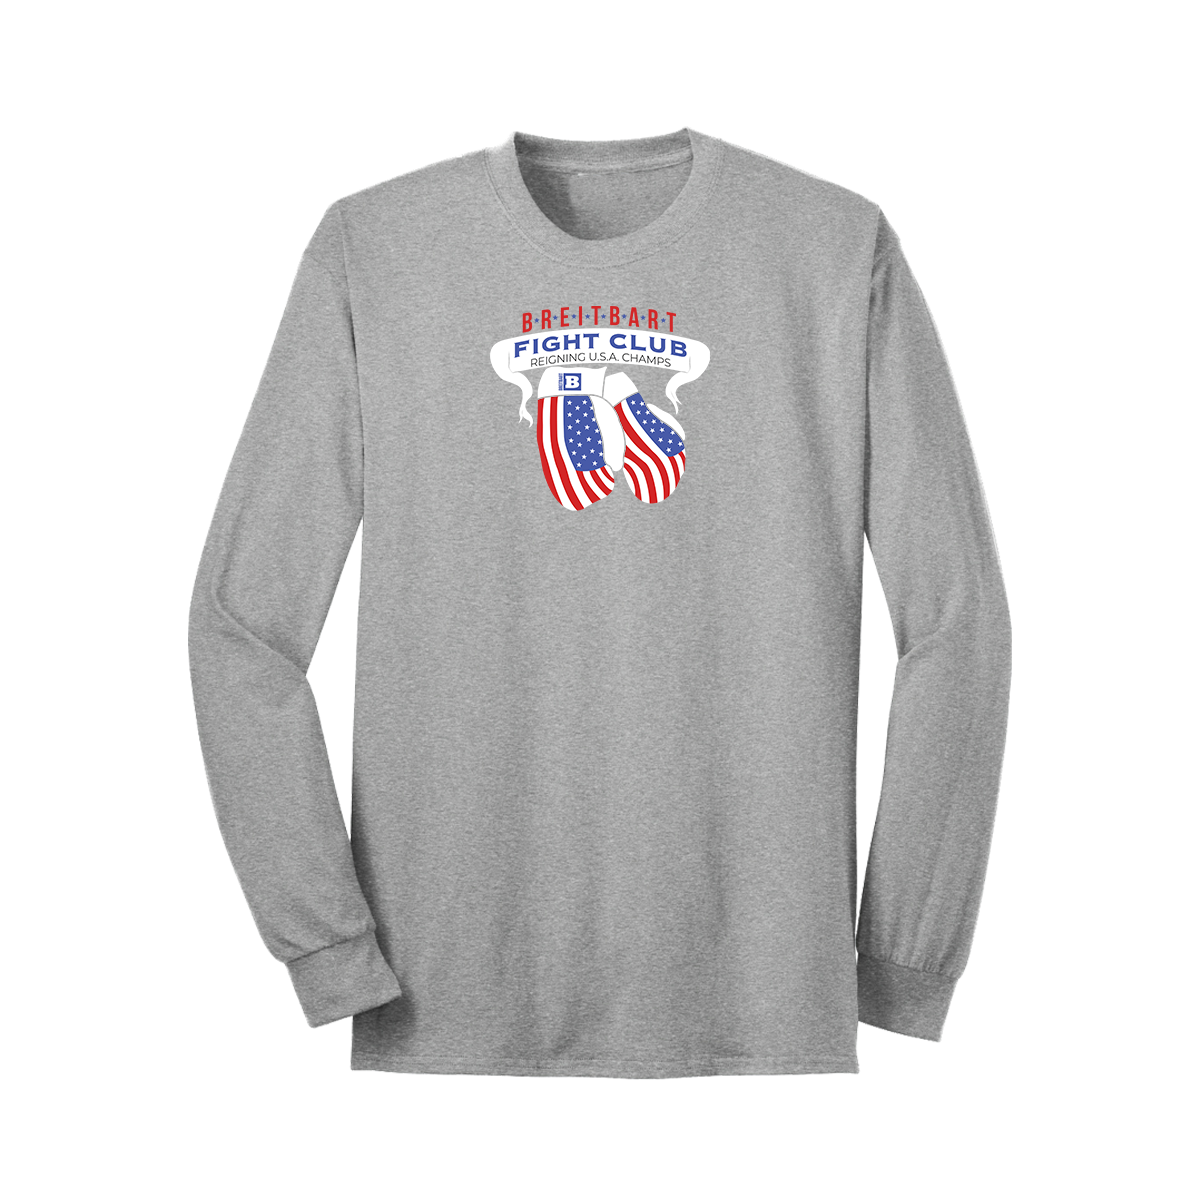 Breitbart Fight Club USA Champs Long Sleeve T-shirt - Grey